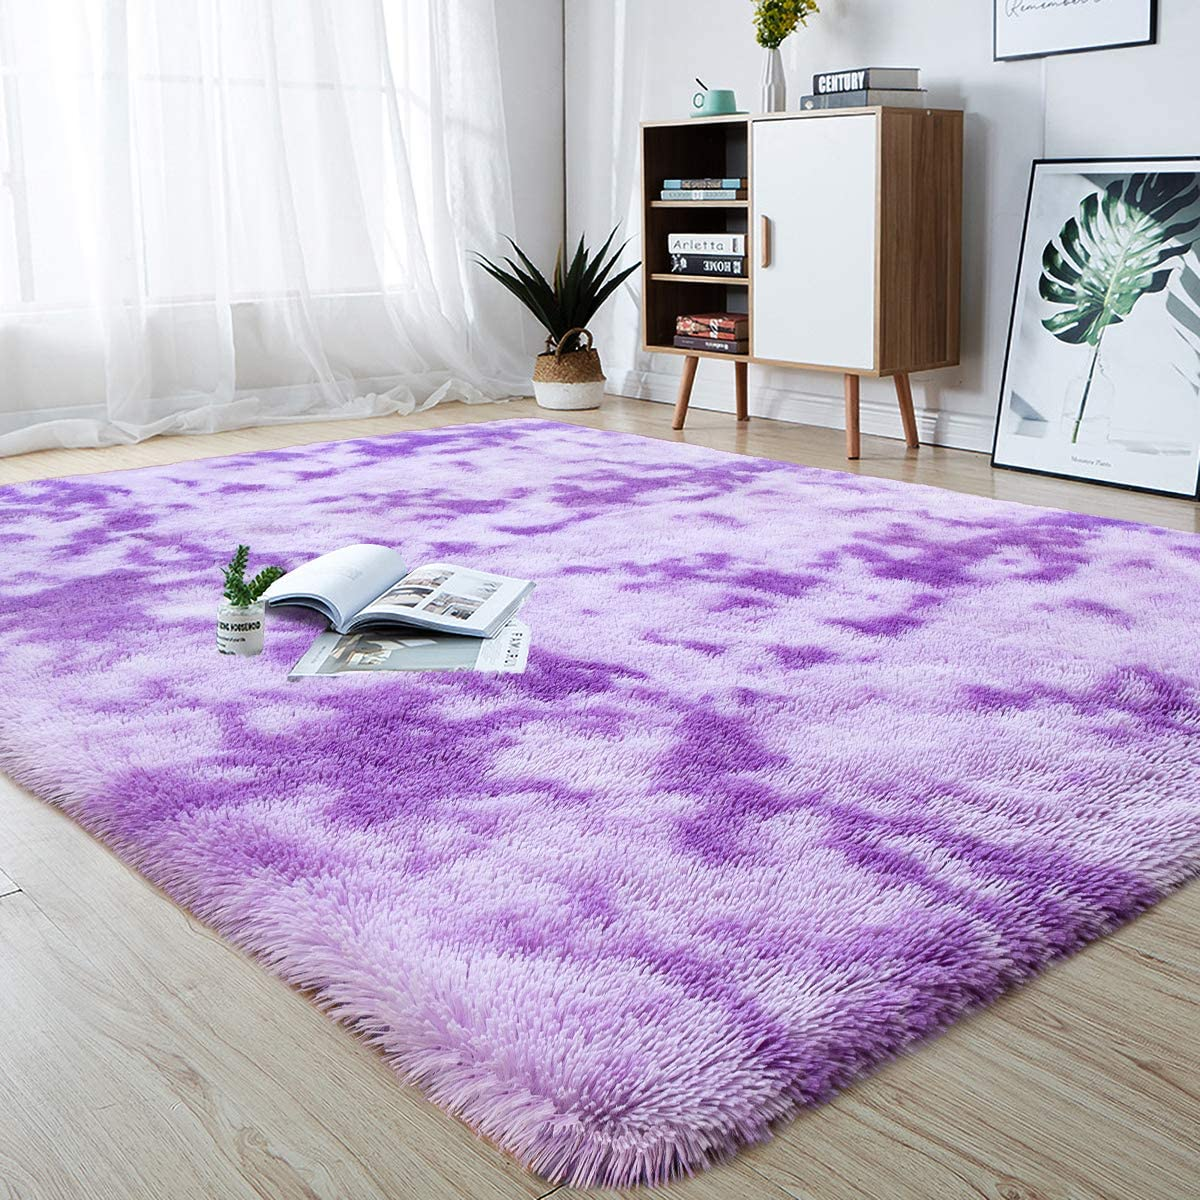 High quality new junovo Modern Abstract Shaggy Area Bedroom Rugs Fluffy Soft Rug New arrival